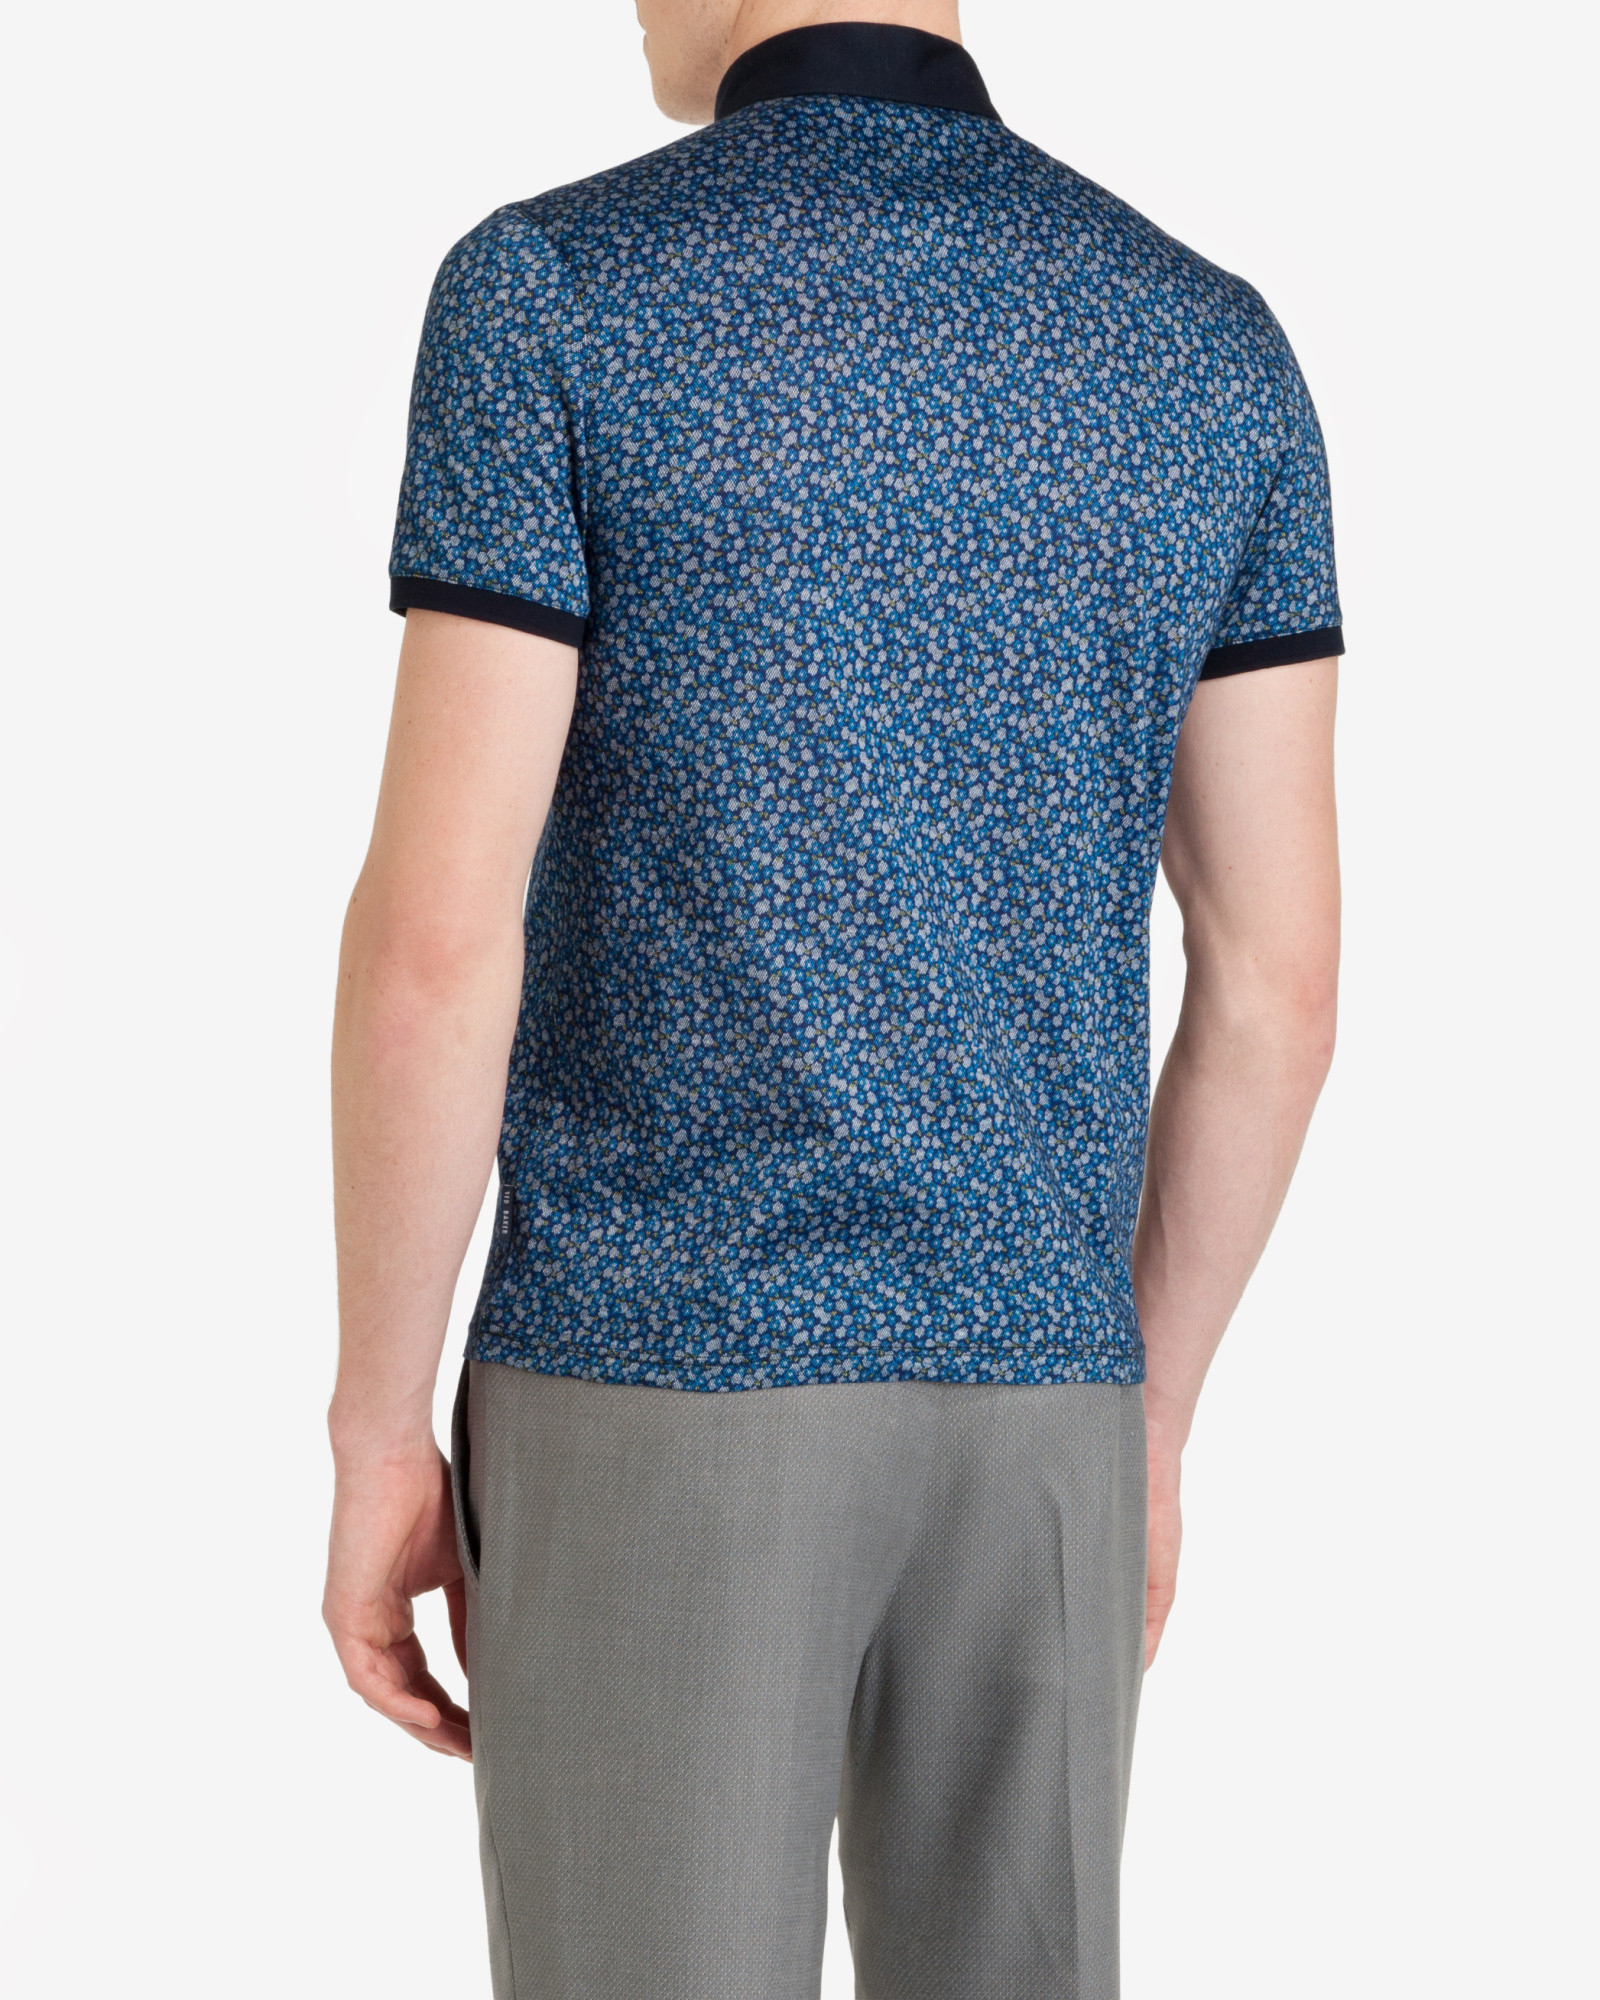 Ted baker flowbo floral print polo shirt in blue for men for Ted baker floral print shirt